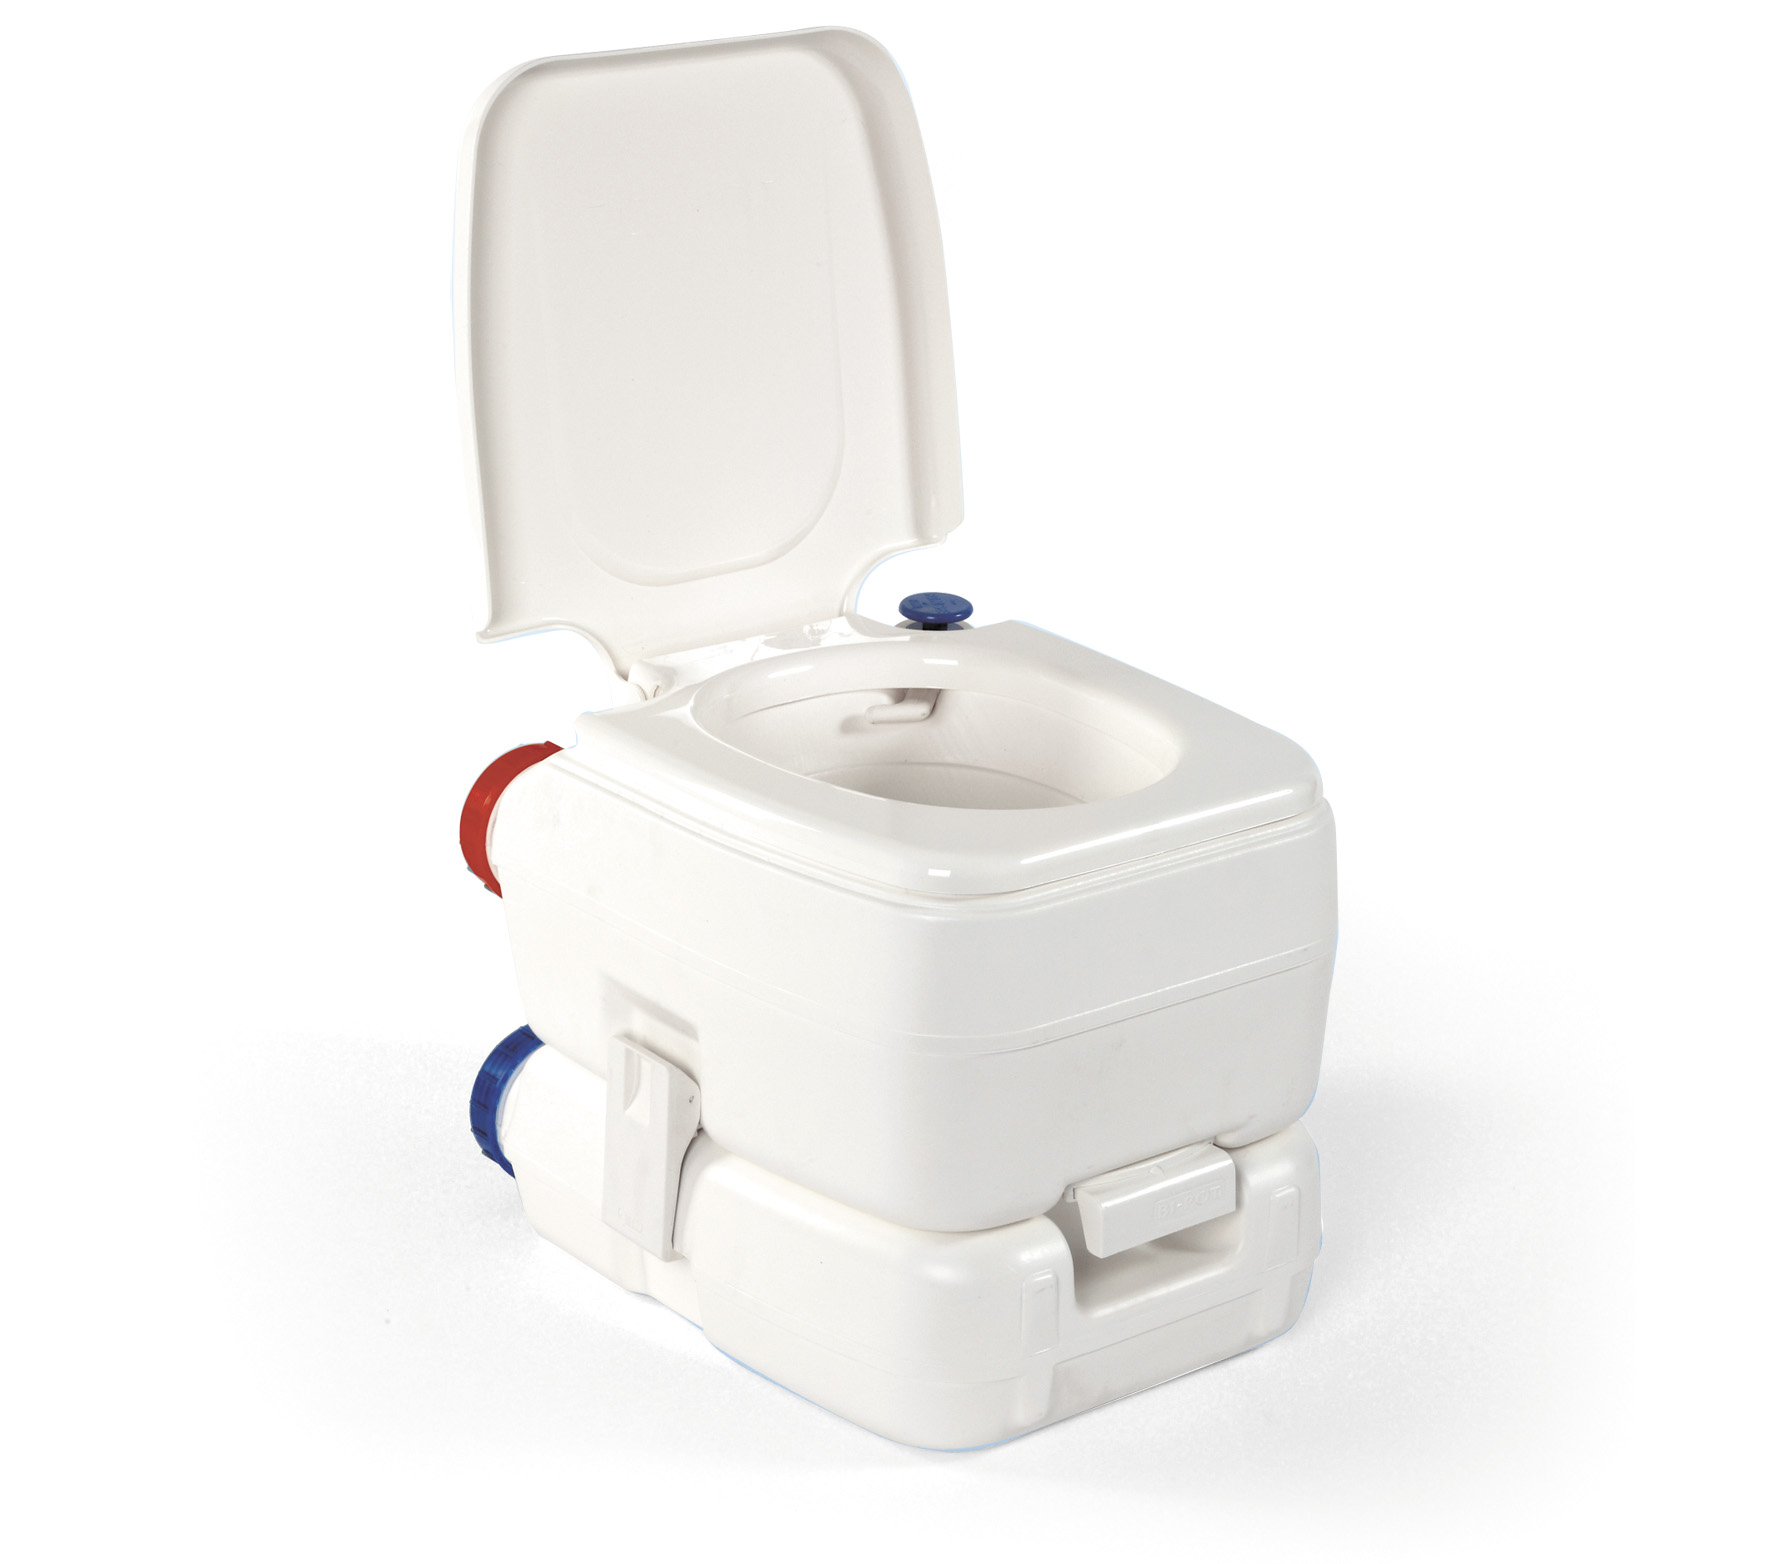 Fiamma Bipots and Sanitary for caravan and motorhome